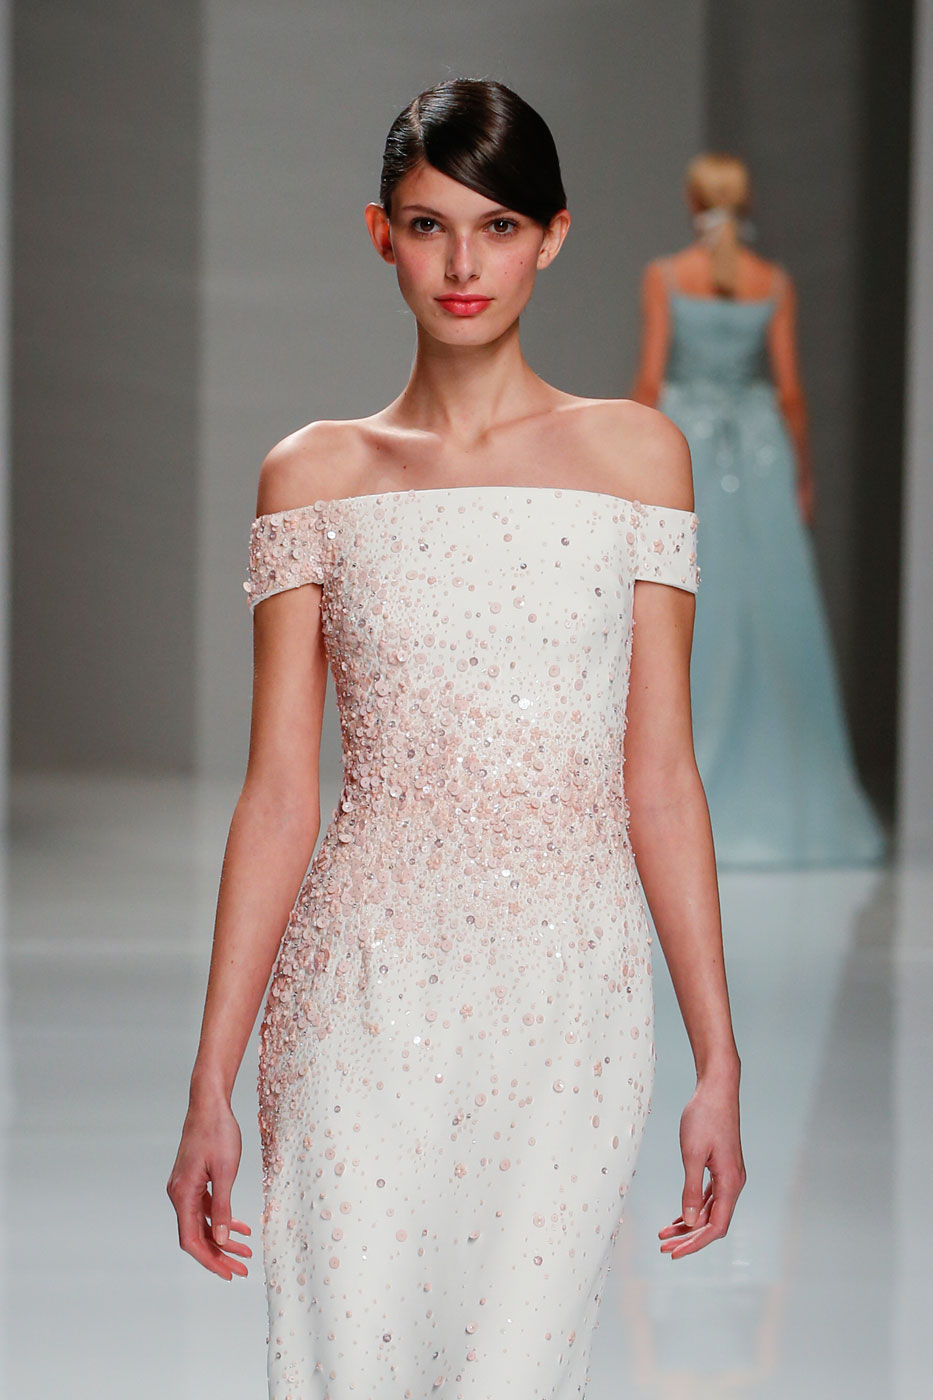 Georges-Hobeika-fashion-runway-show-haute-couture-paris-spring-2015-the-impression-48